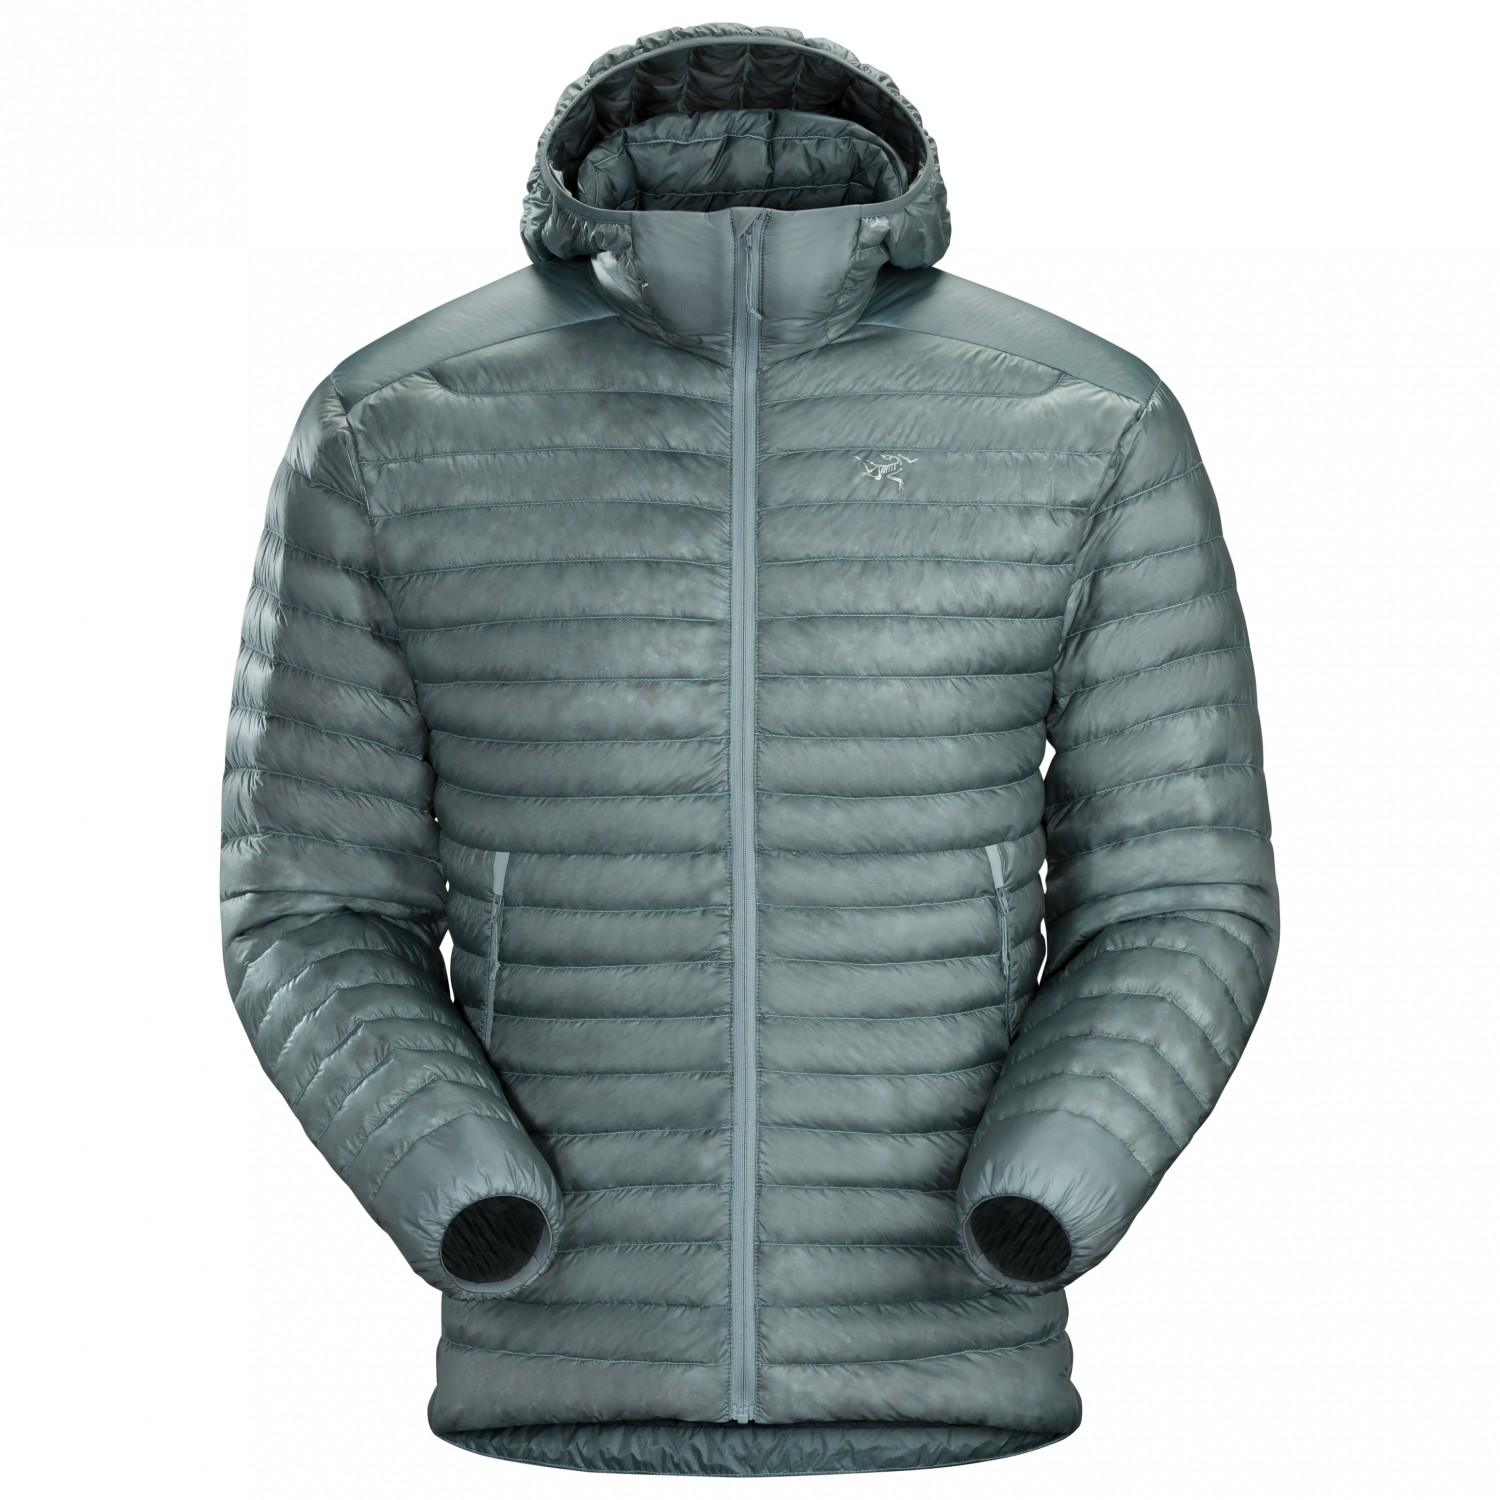 a7024f235c7 Arc'teryx Cerium SL Hoody - Down Jacket Men's | Free UK Delivery ...